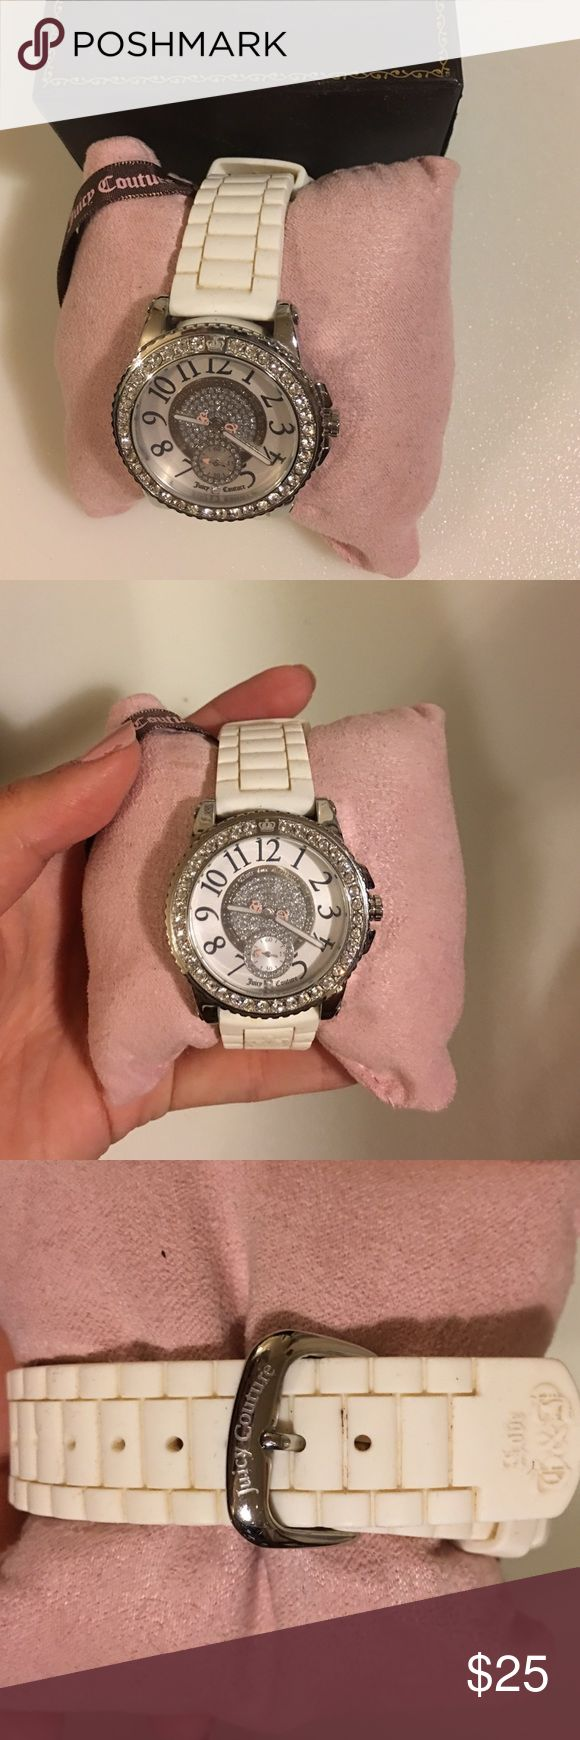 White gel band Juicy Couture watch Watch is used, band is gel and is a bit dirty. Batteries does not work. All rhinestones are in tact. Watch box for storage is broken. Juicy Couture Accessories Watches